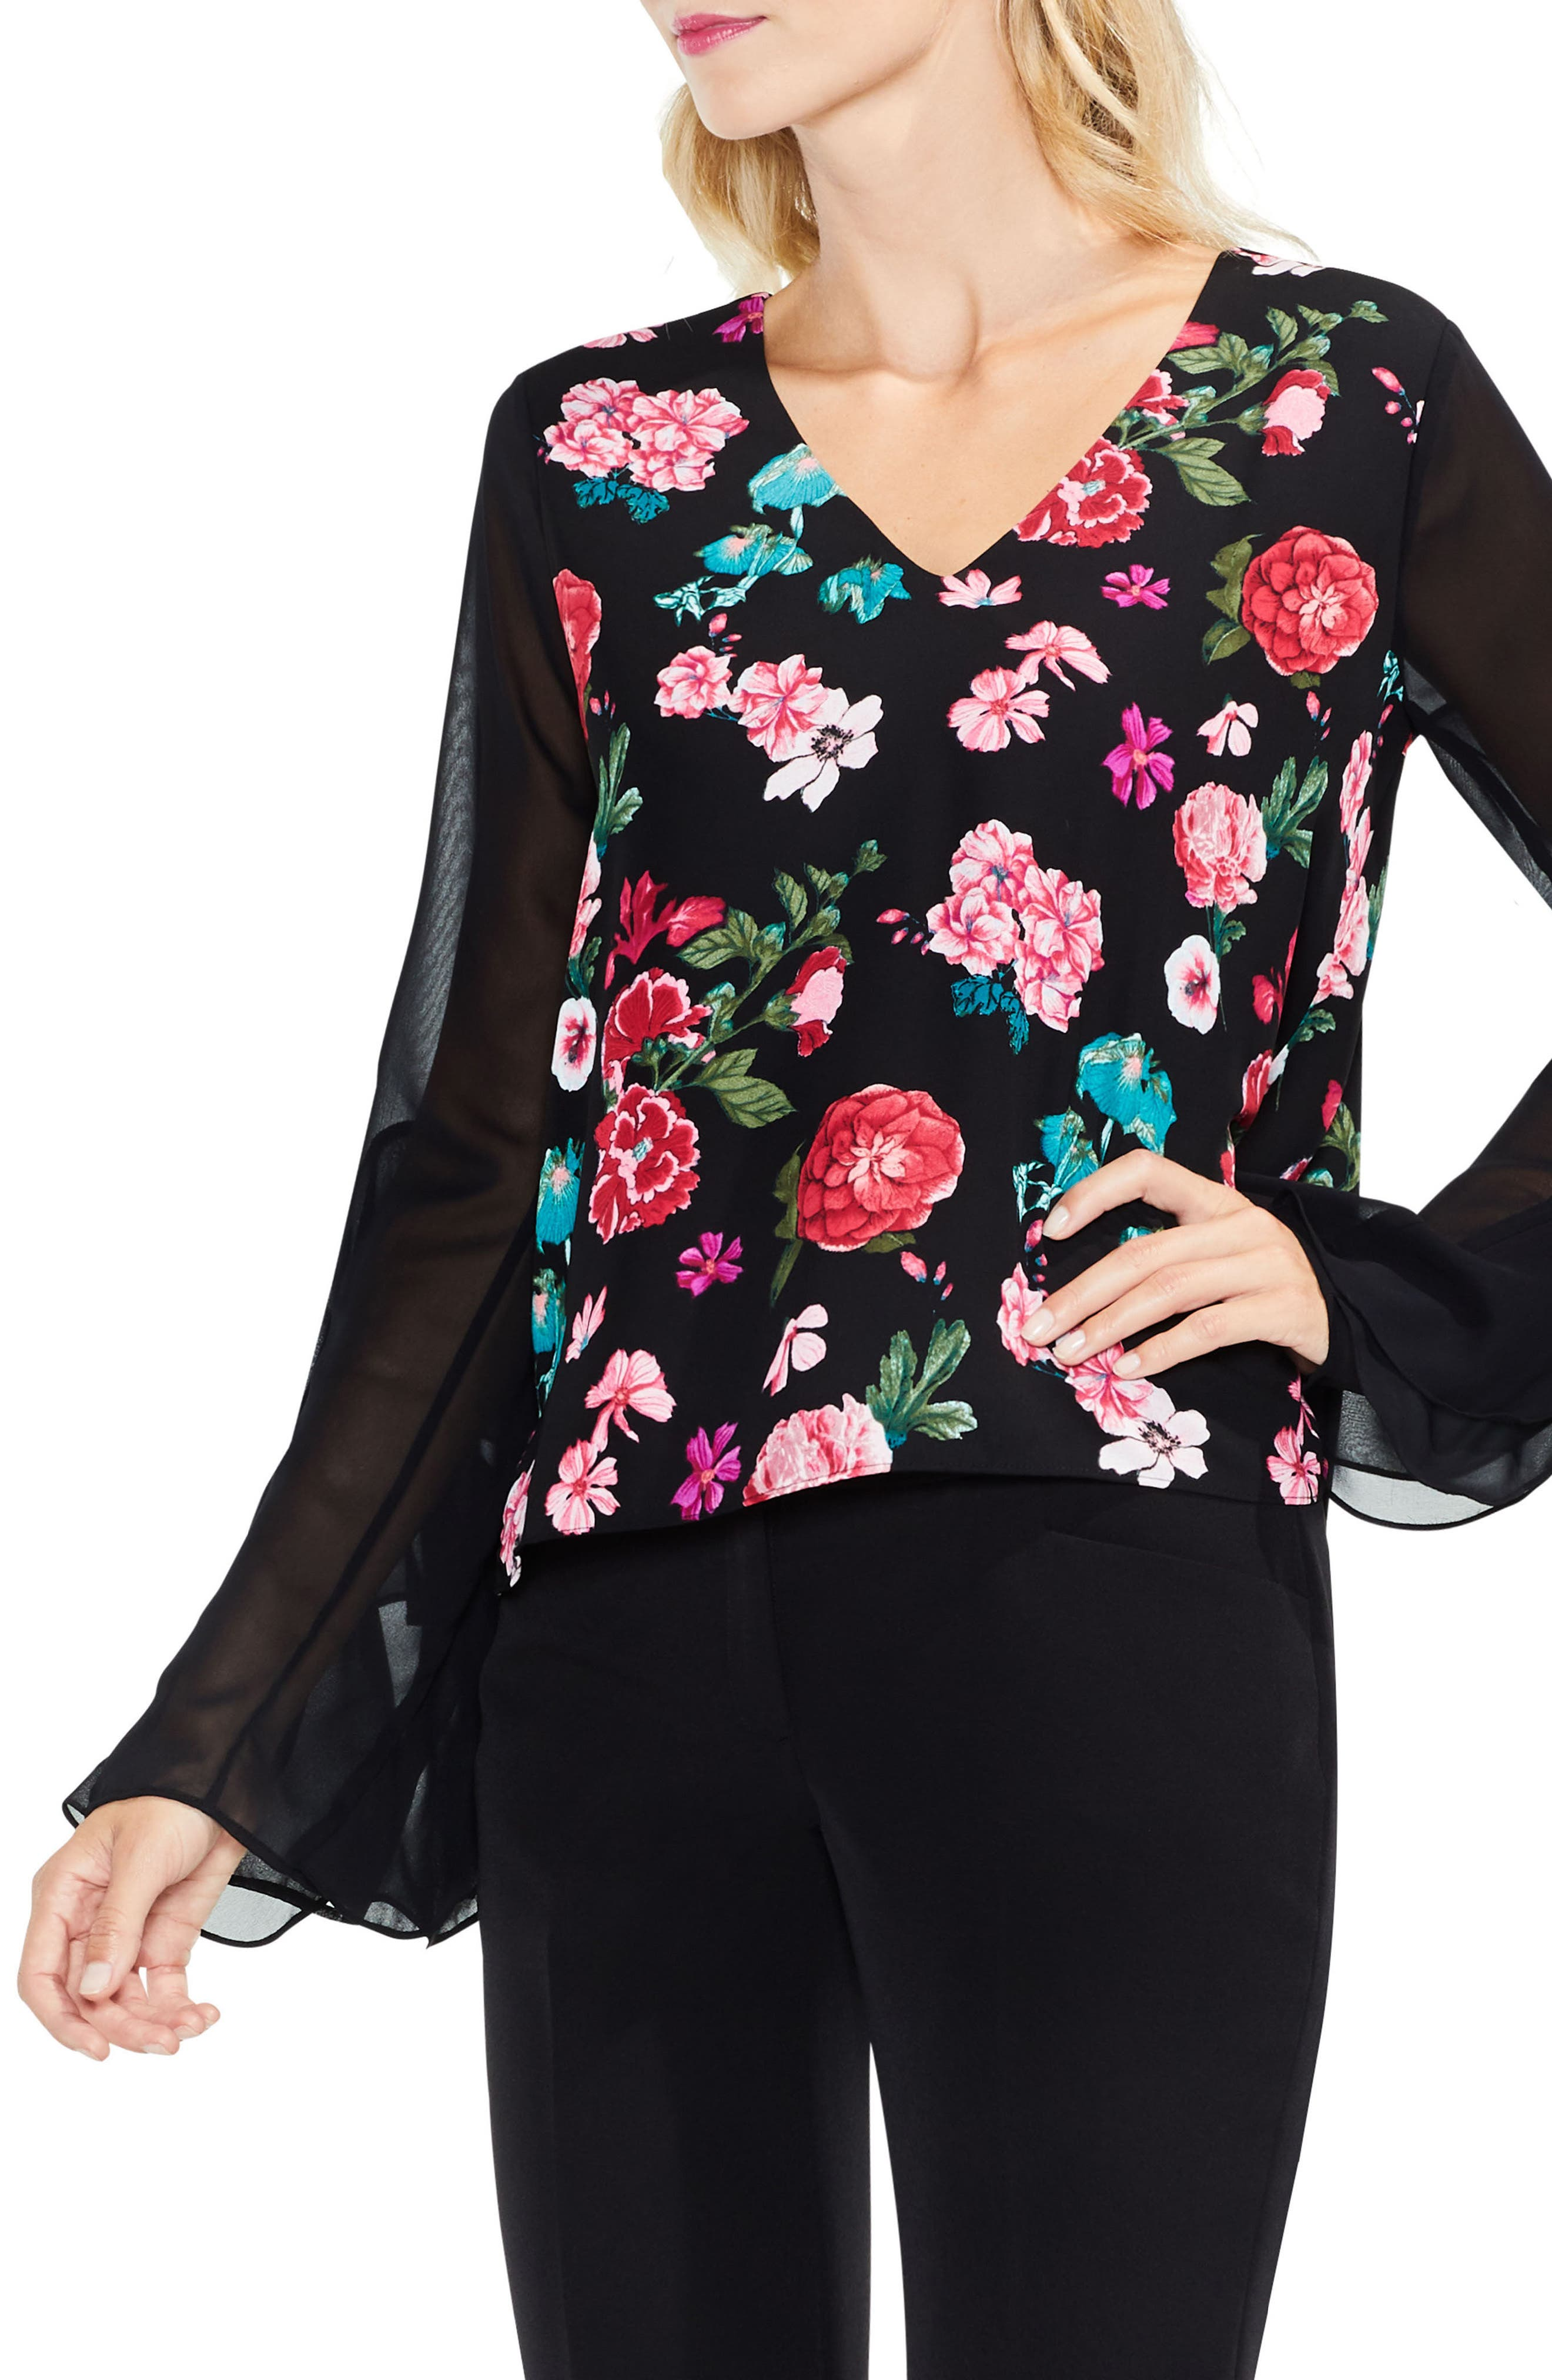 Main Image - Vince Camuto Floral Heirloom Ruffle Sleeve Top